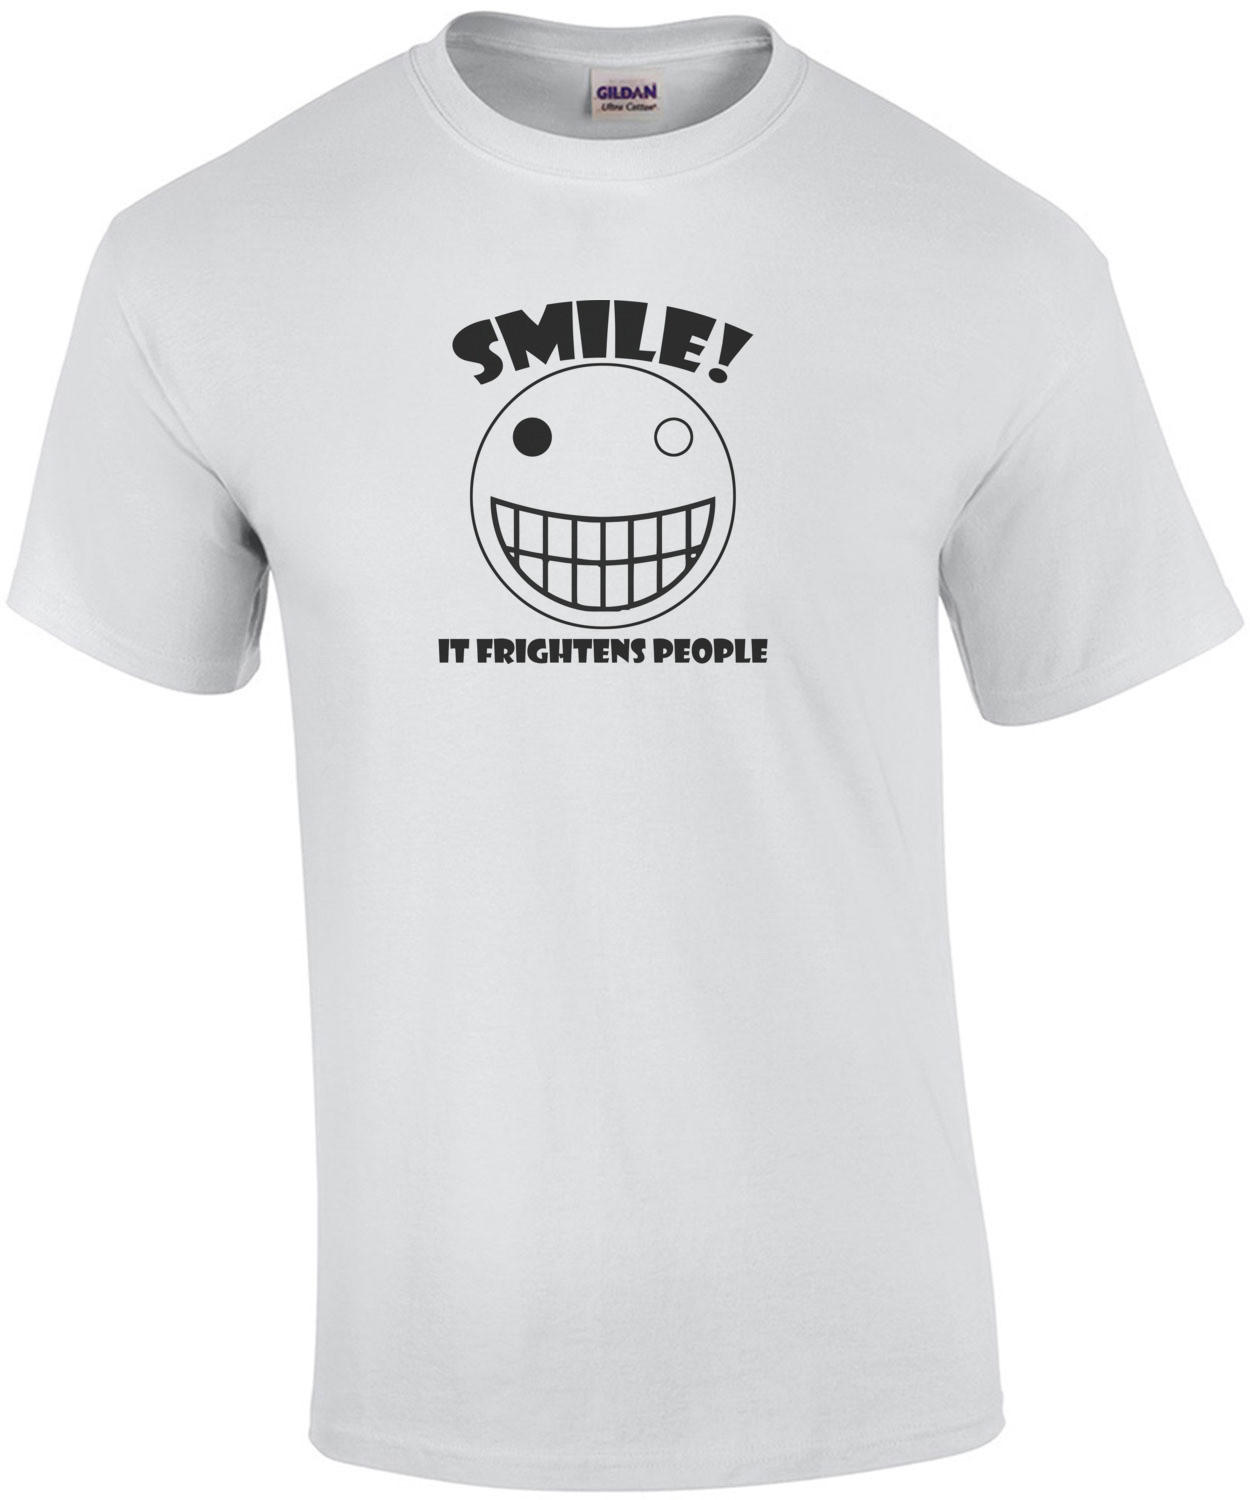 Smile, It Frightens People Shirt